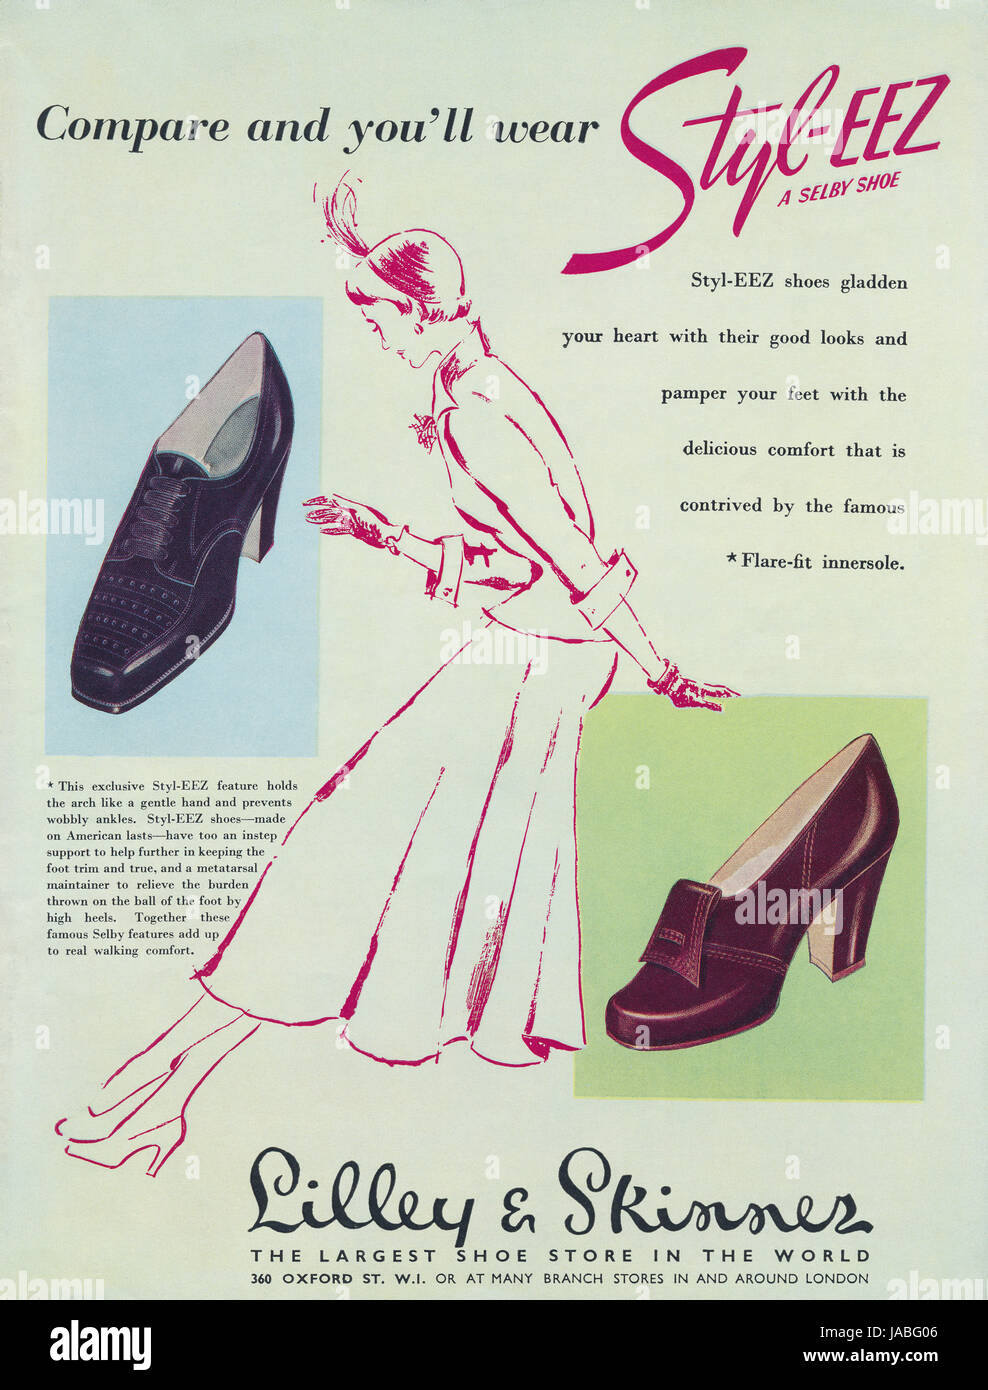 1950 British advertisement for Selby Styl-Eez Shoes, available at Lilley & Skinner shoe stores. - Stock Image